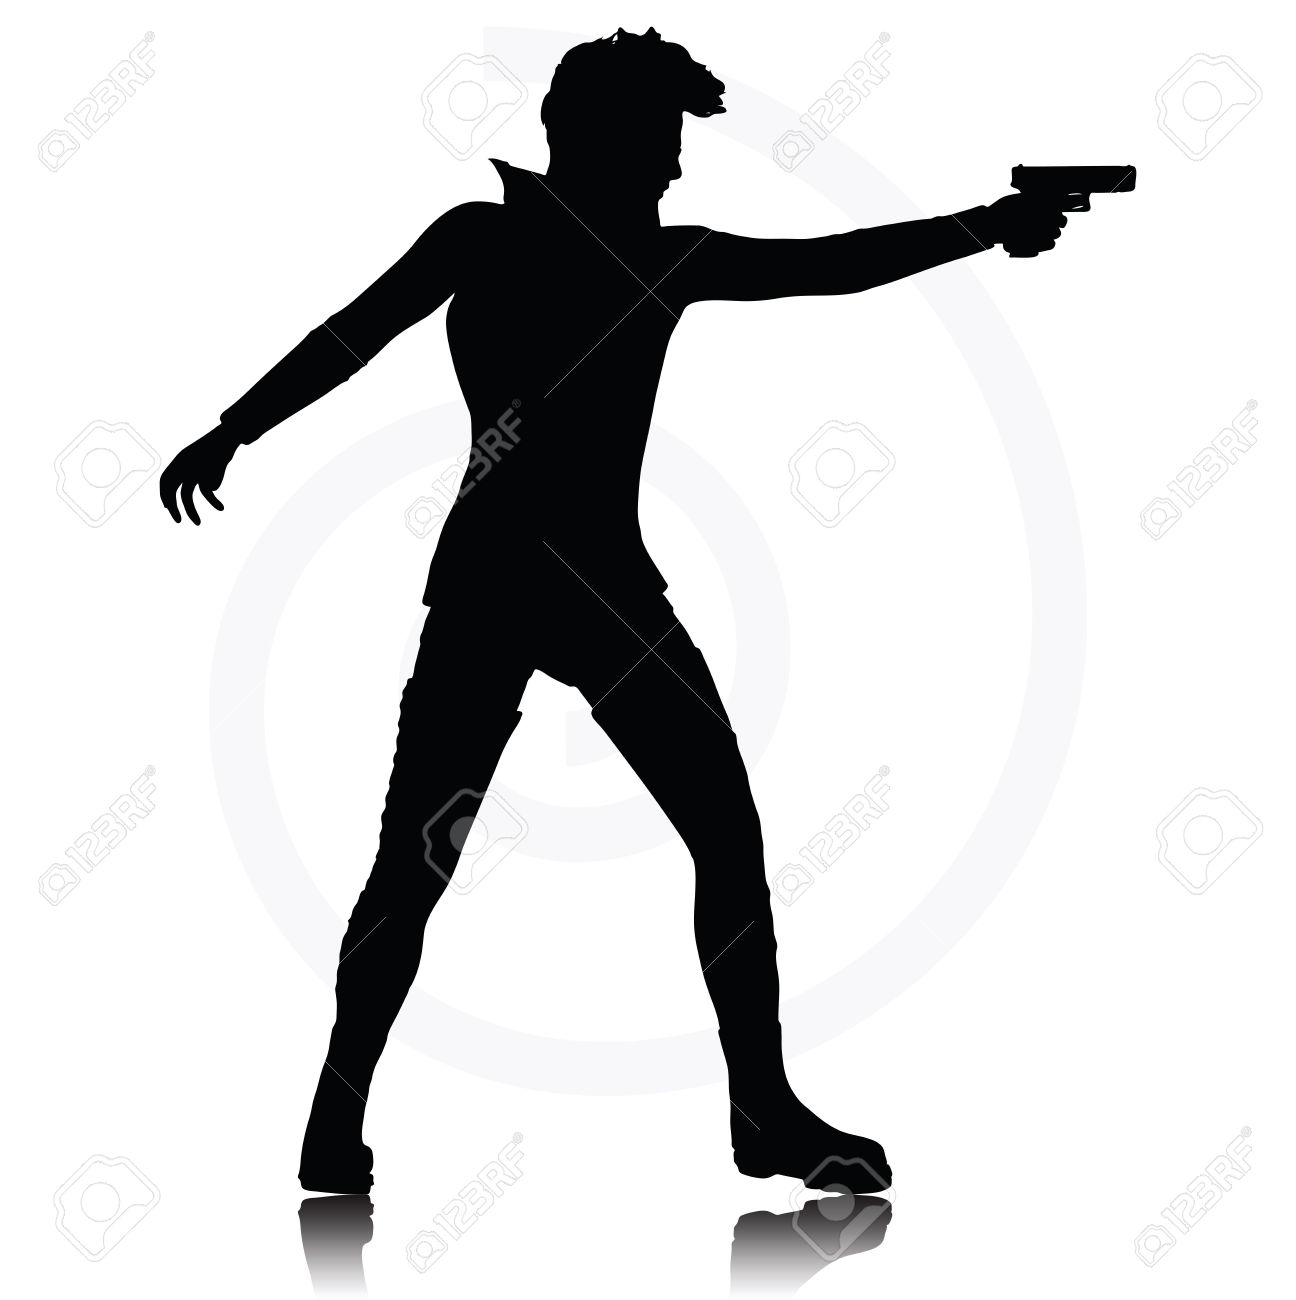 Black And White Photos Of A Gun Pointing Pictures to Pin ...